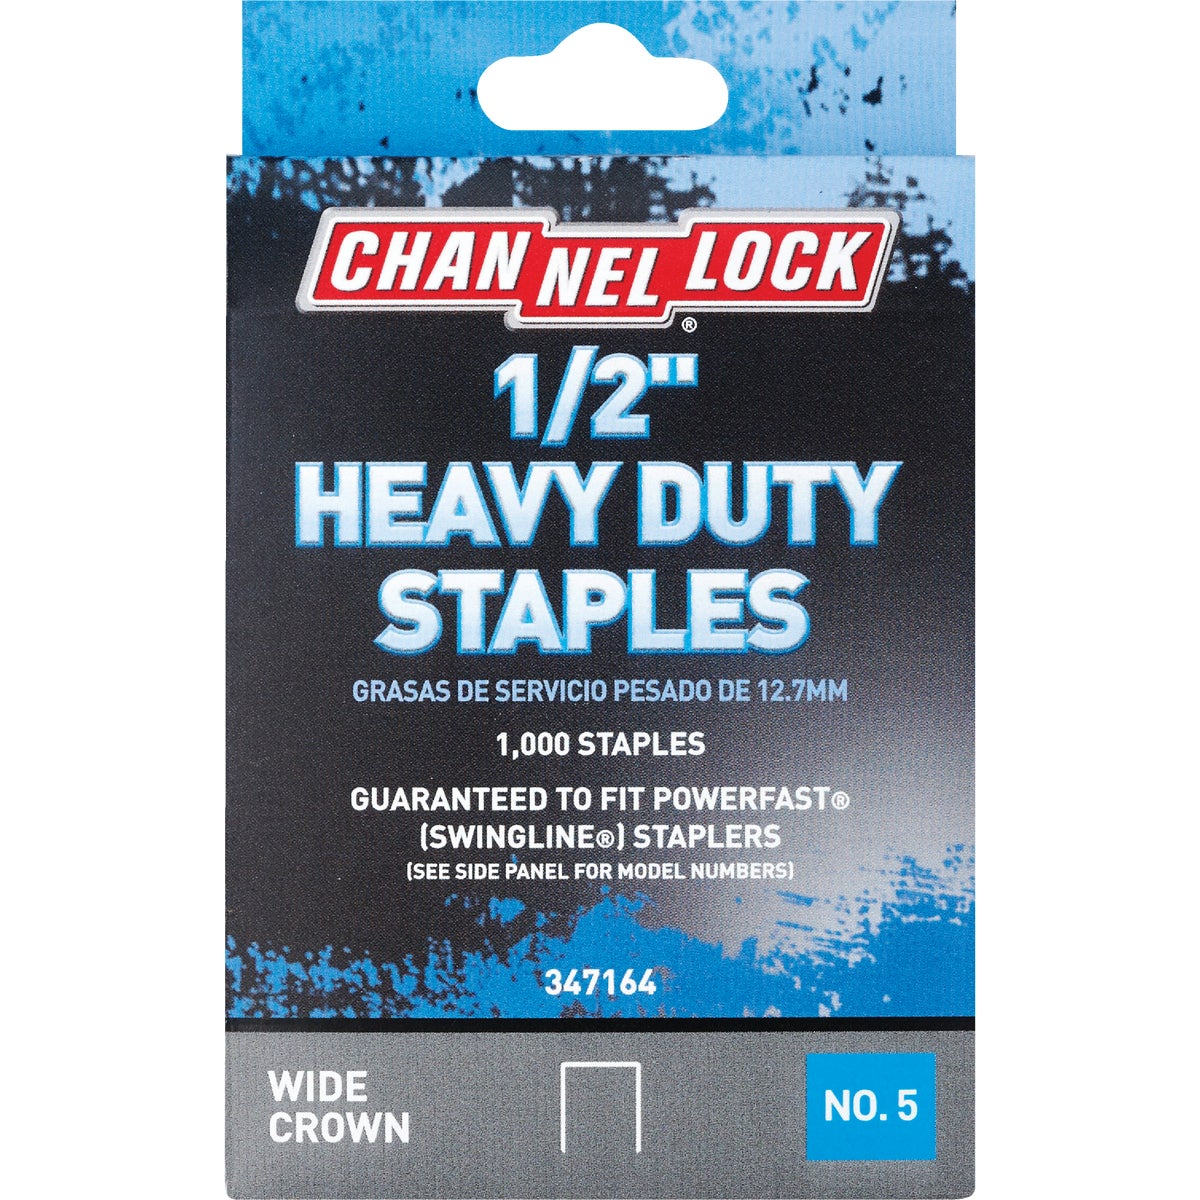 "1/2"" STAPLE - 347164 by Do it Best"